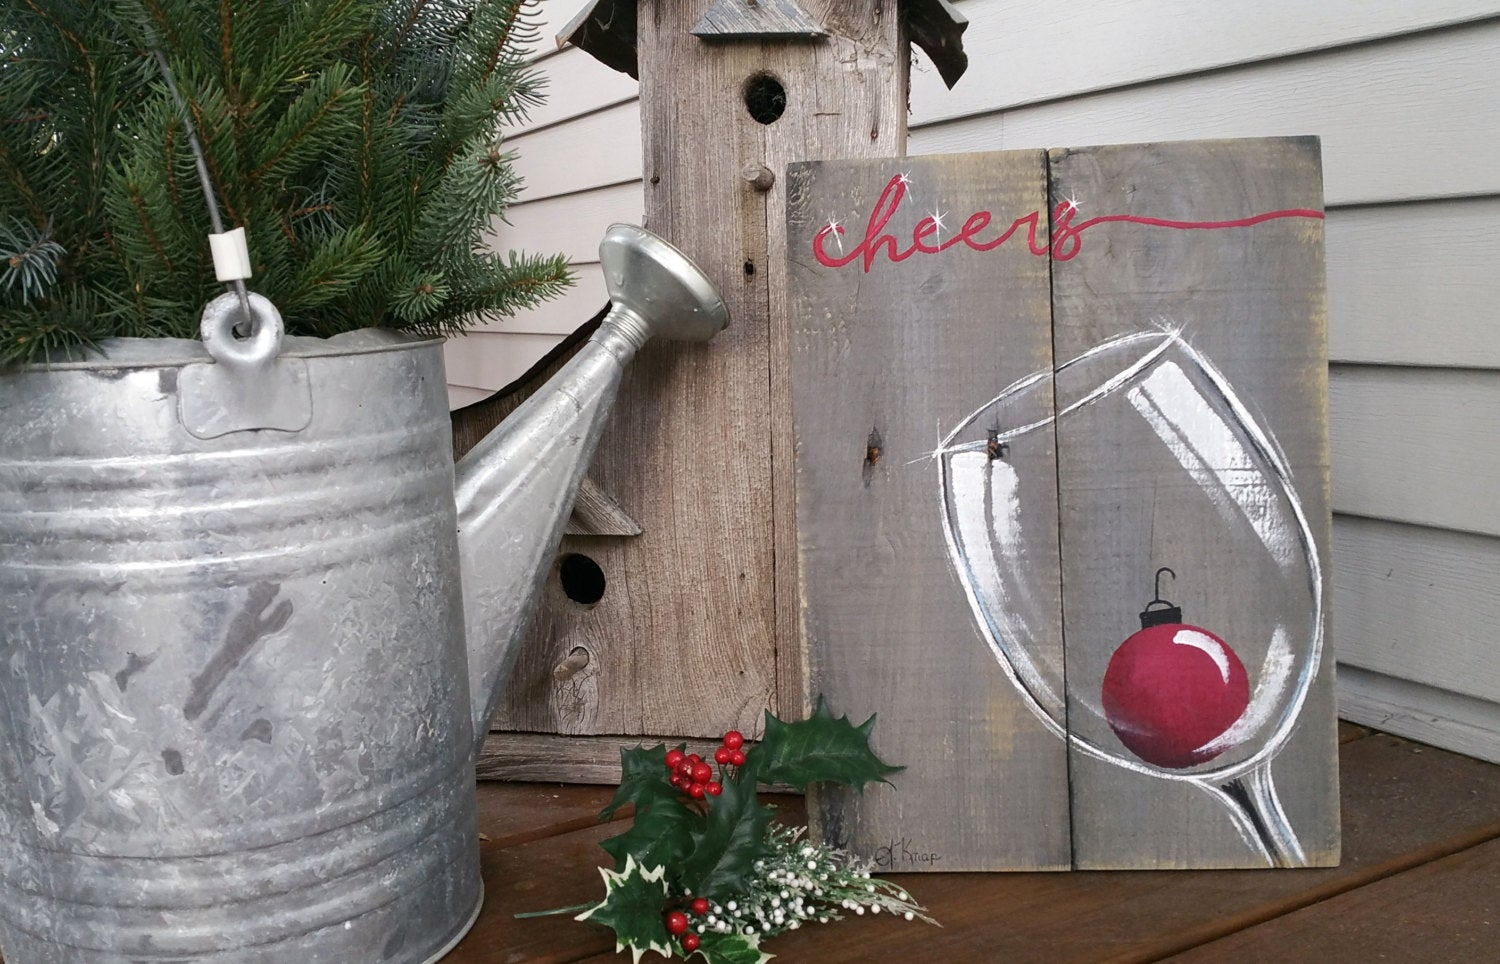 Christmas wine, hand painted Christmas pallet art, Cheers, red Christmas holiday bulb